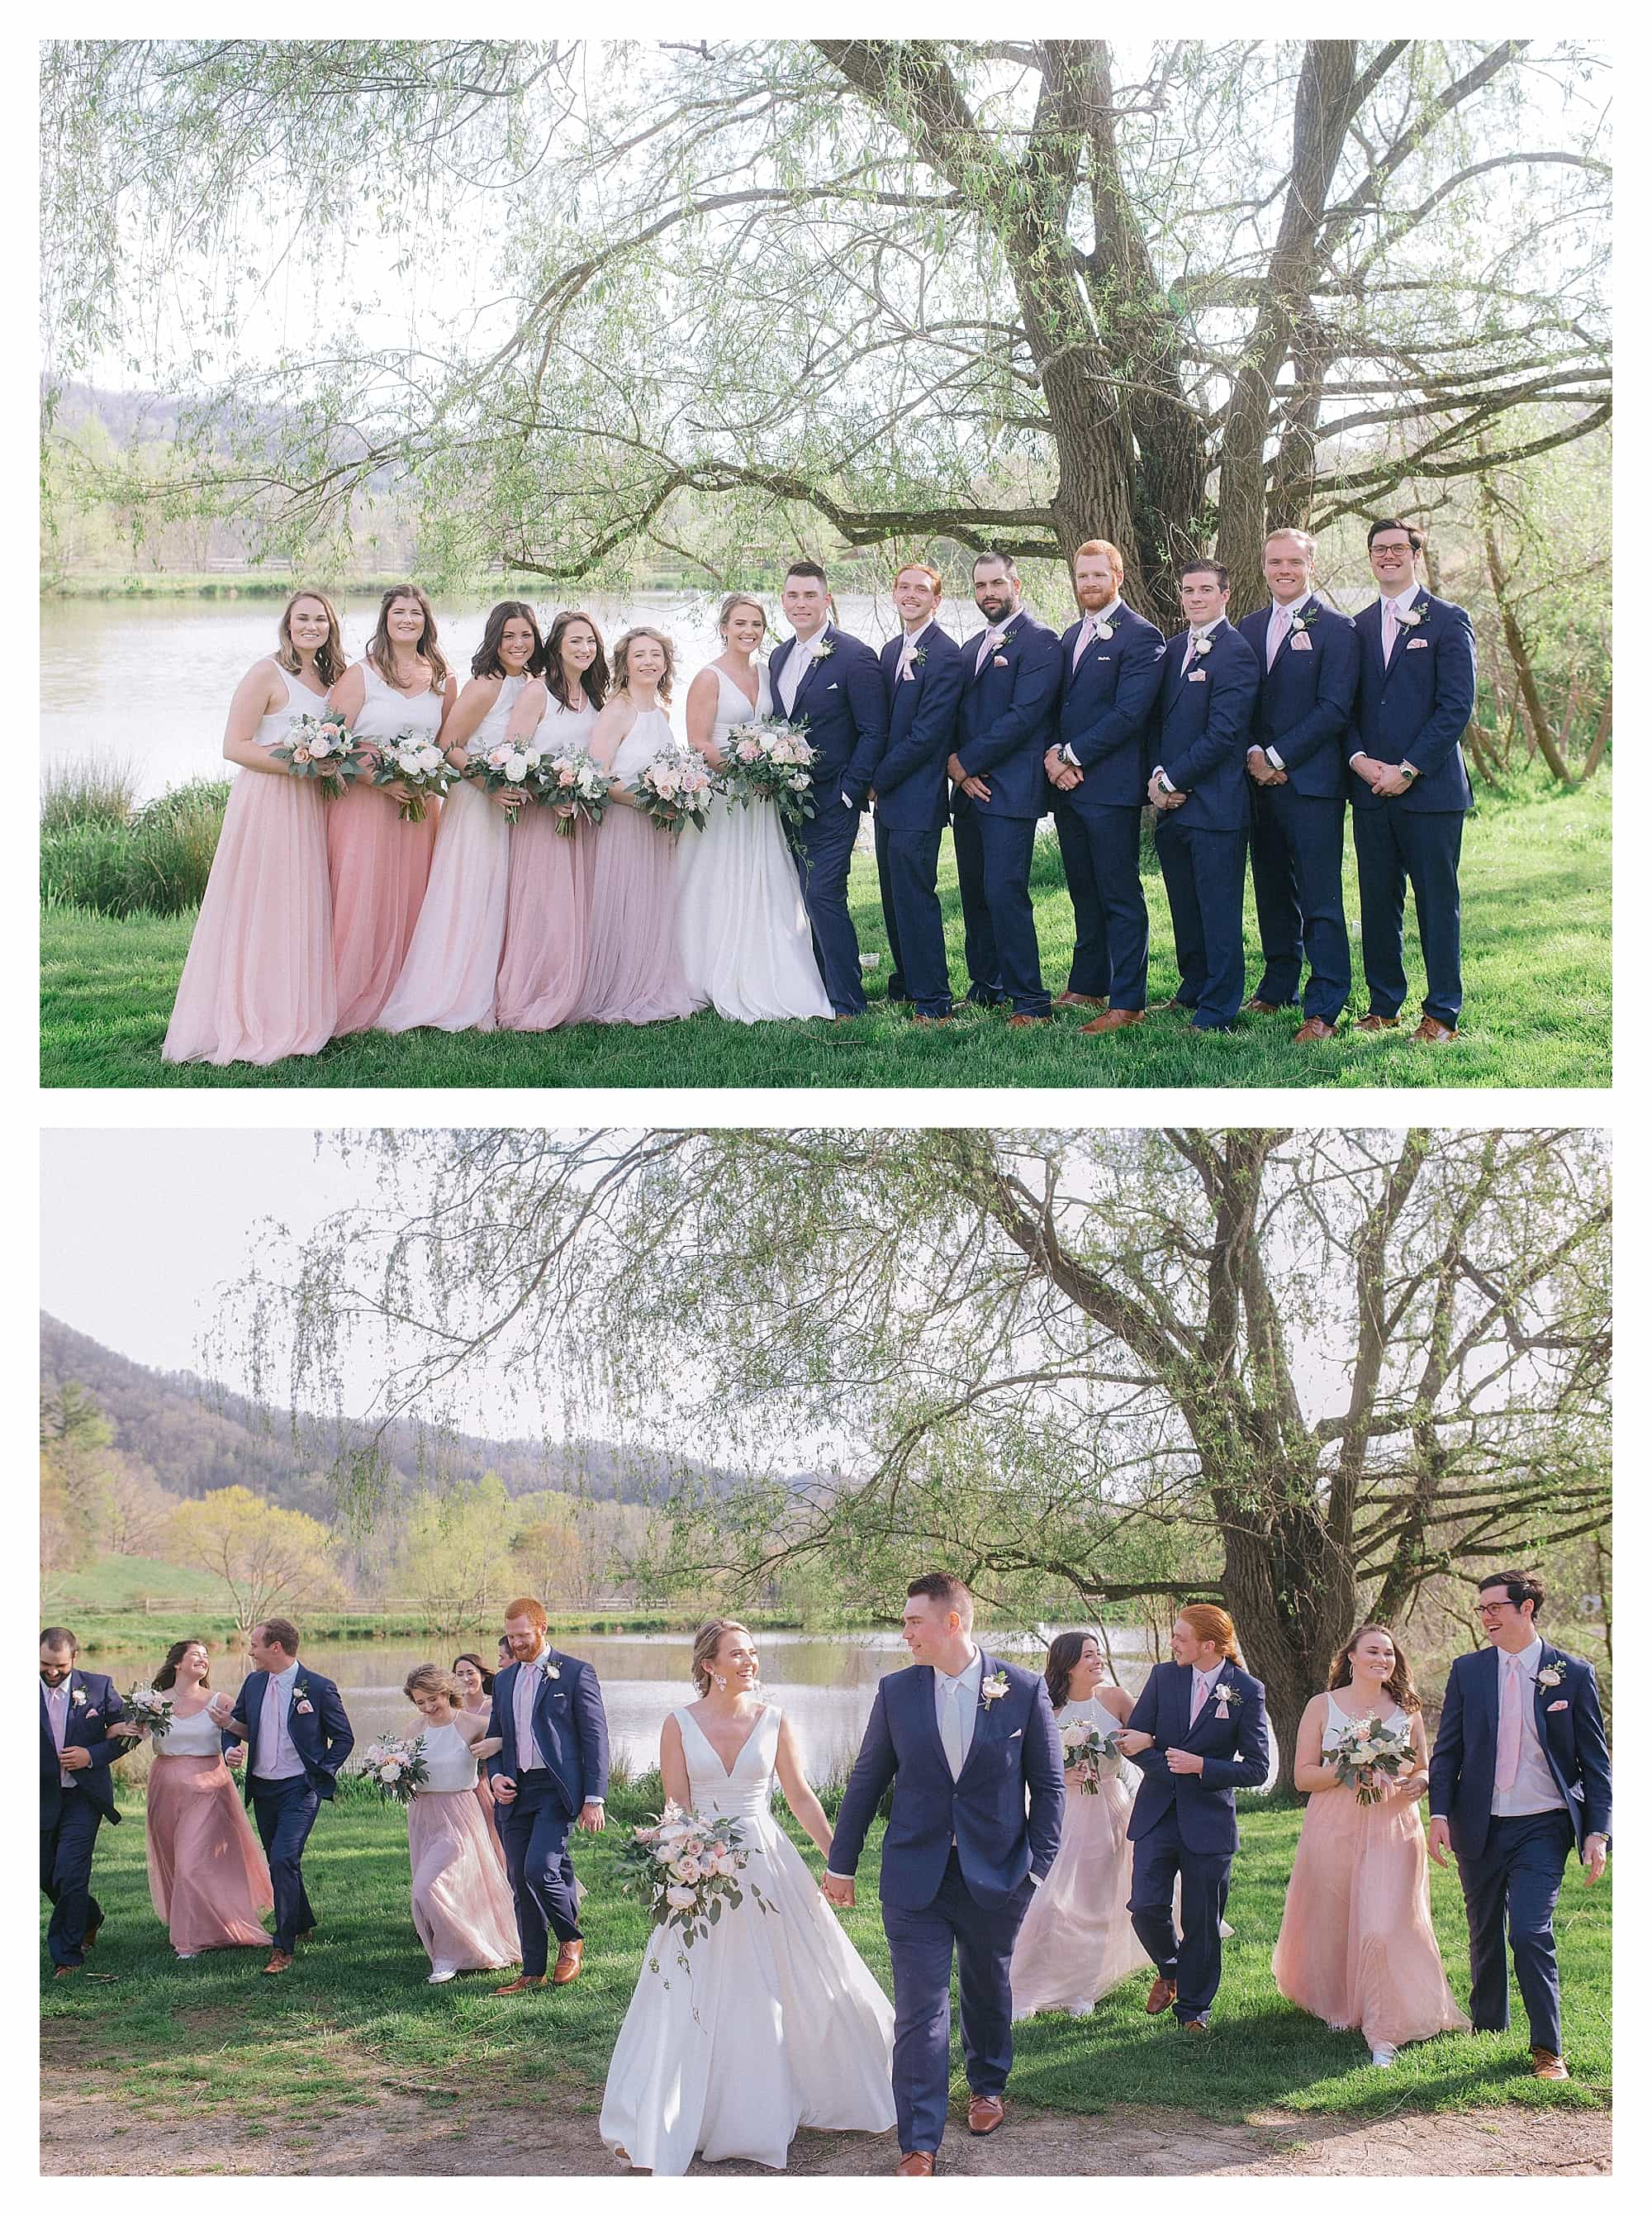 Wedding party posing beside pond under willow tree